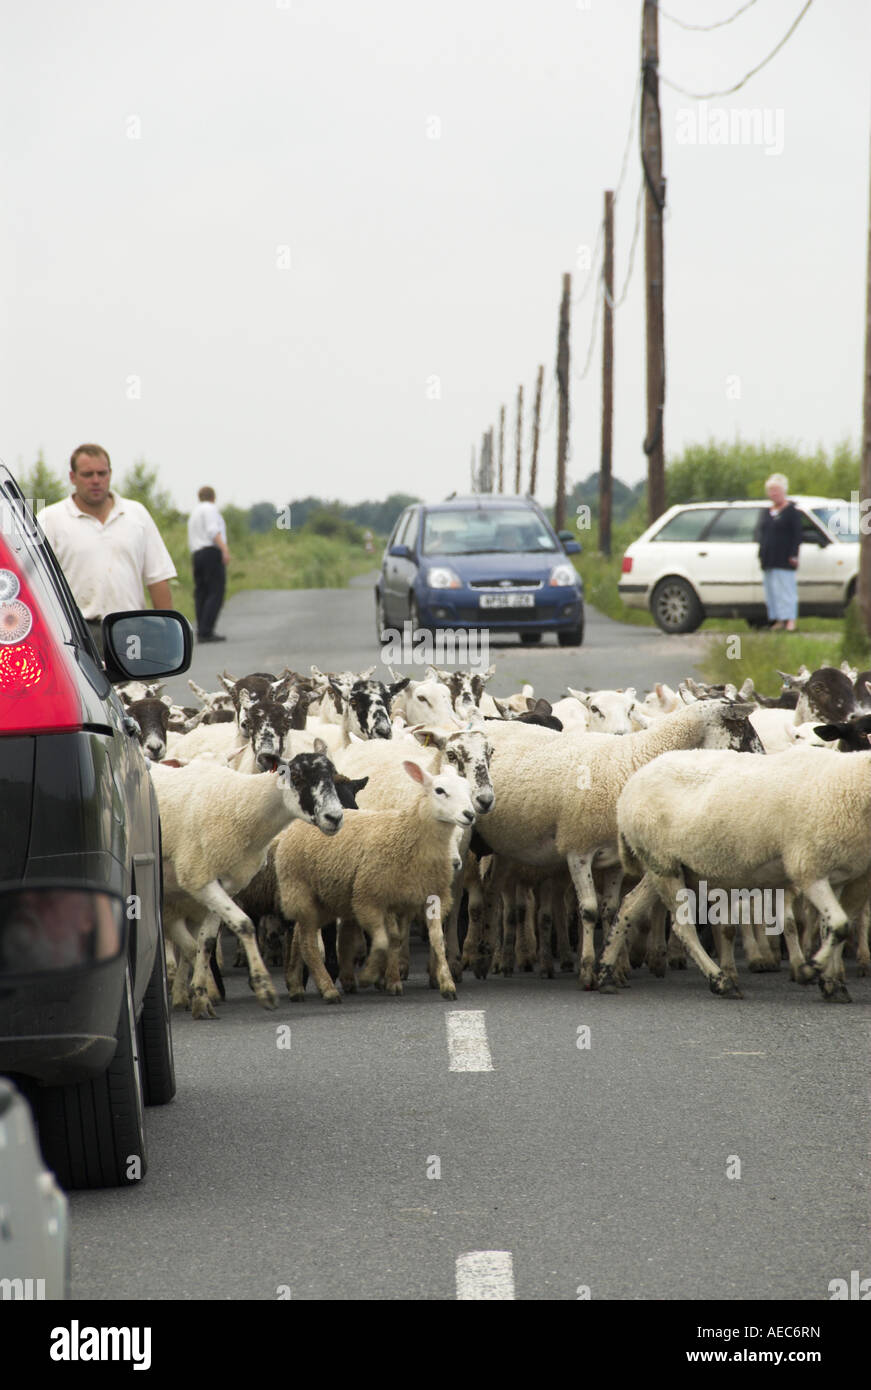 Farmer moving sheep on country road - Stock Image